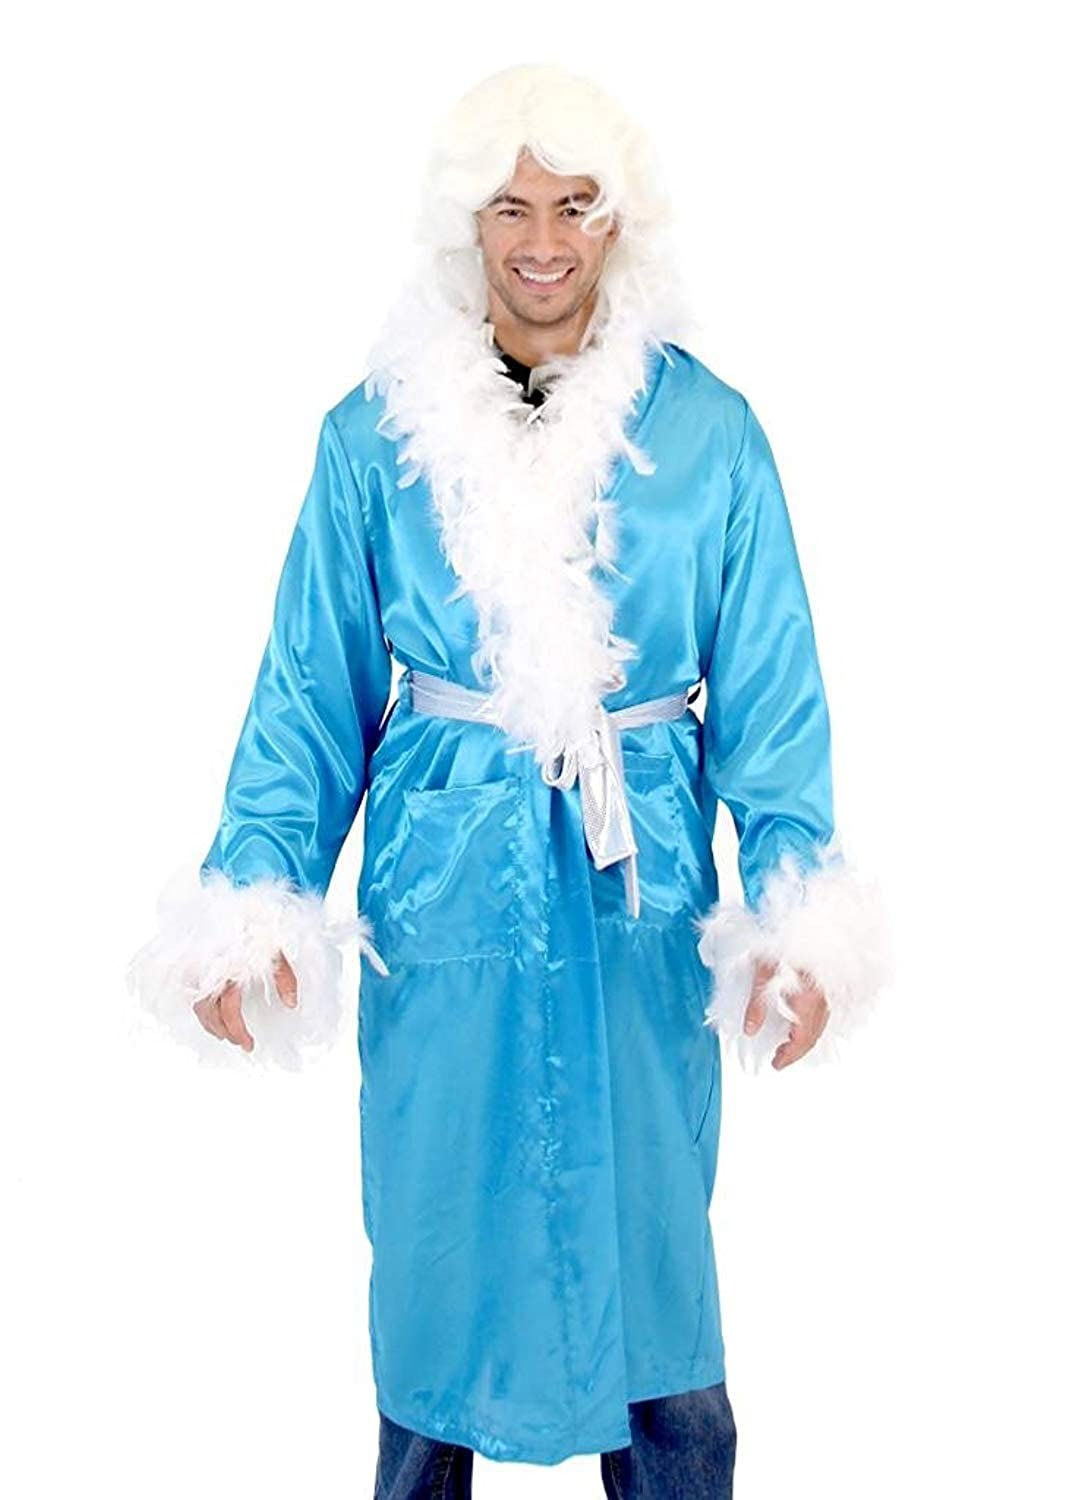 Ric Flair Costume Robe and Wig